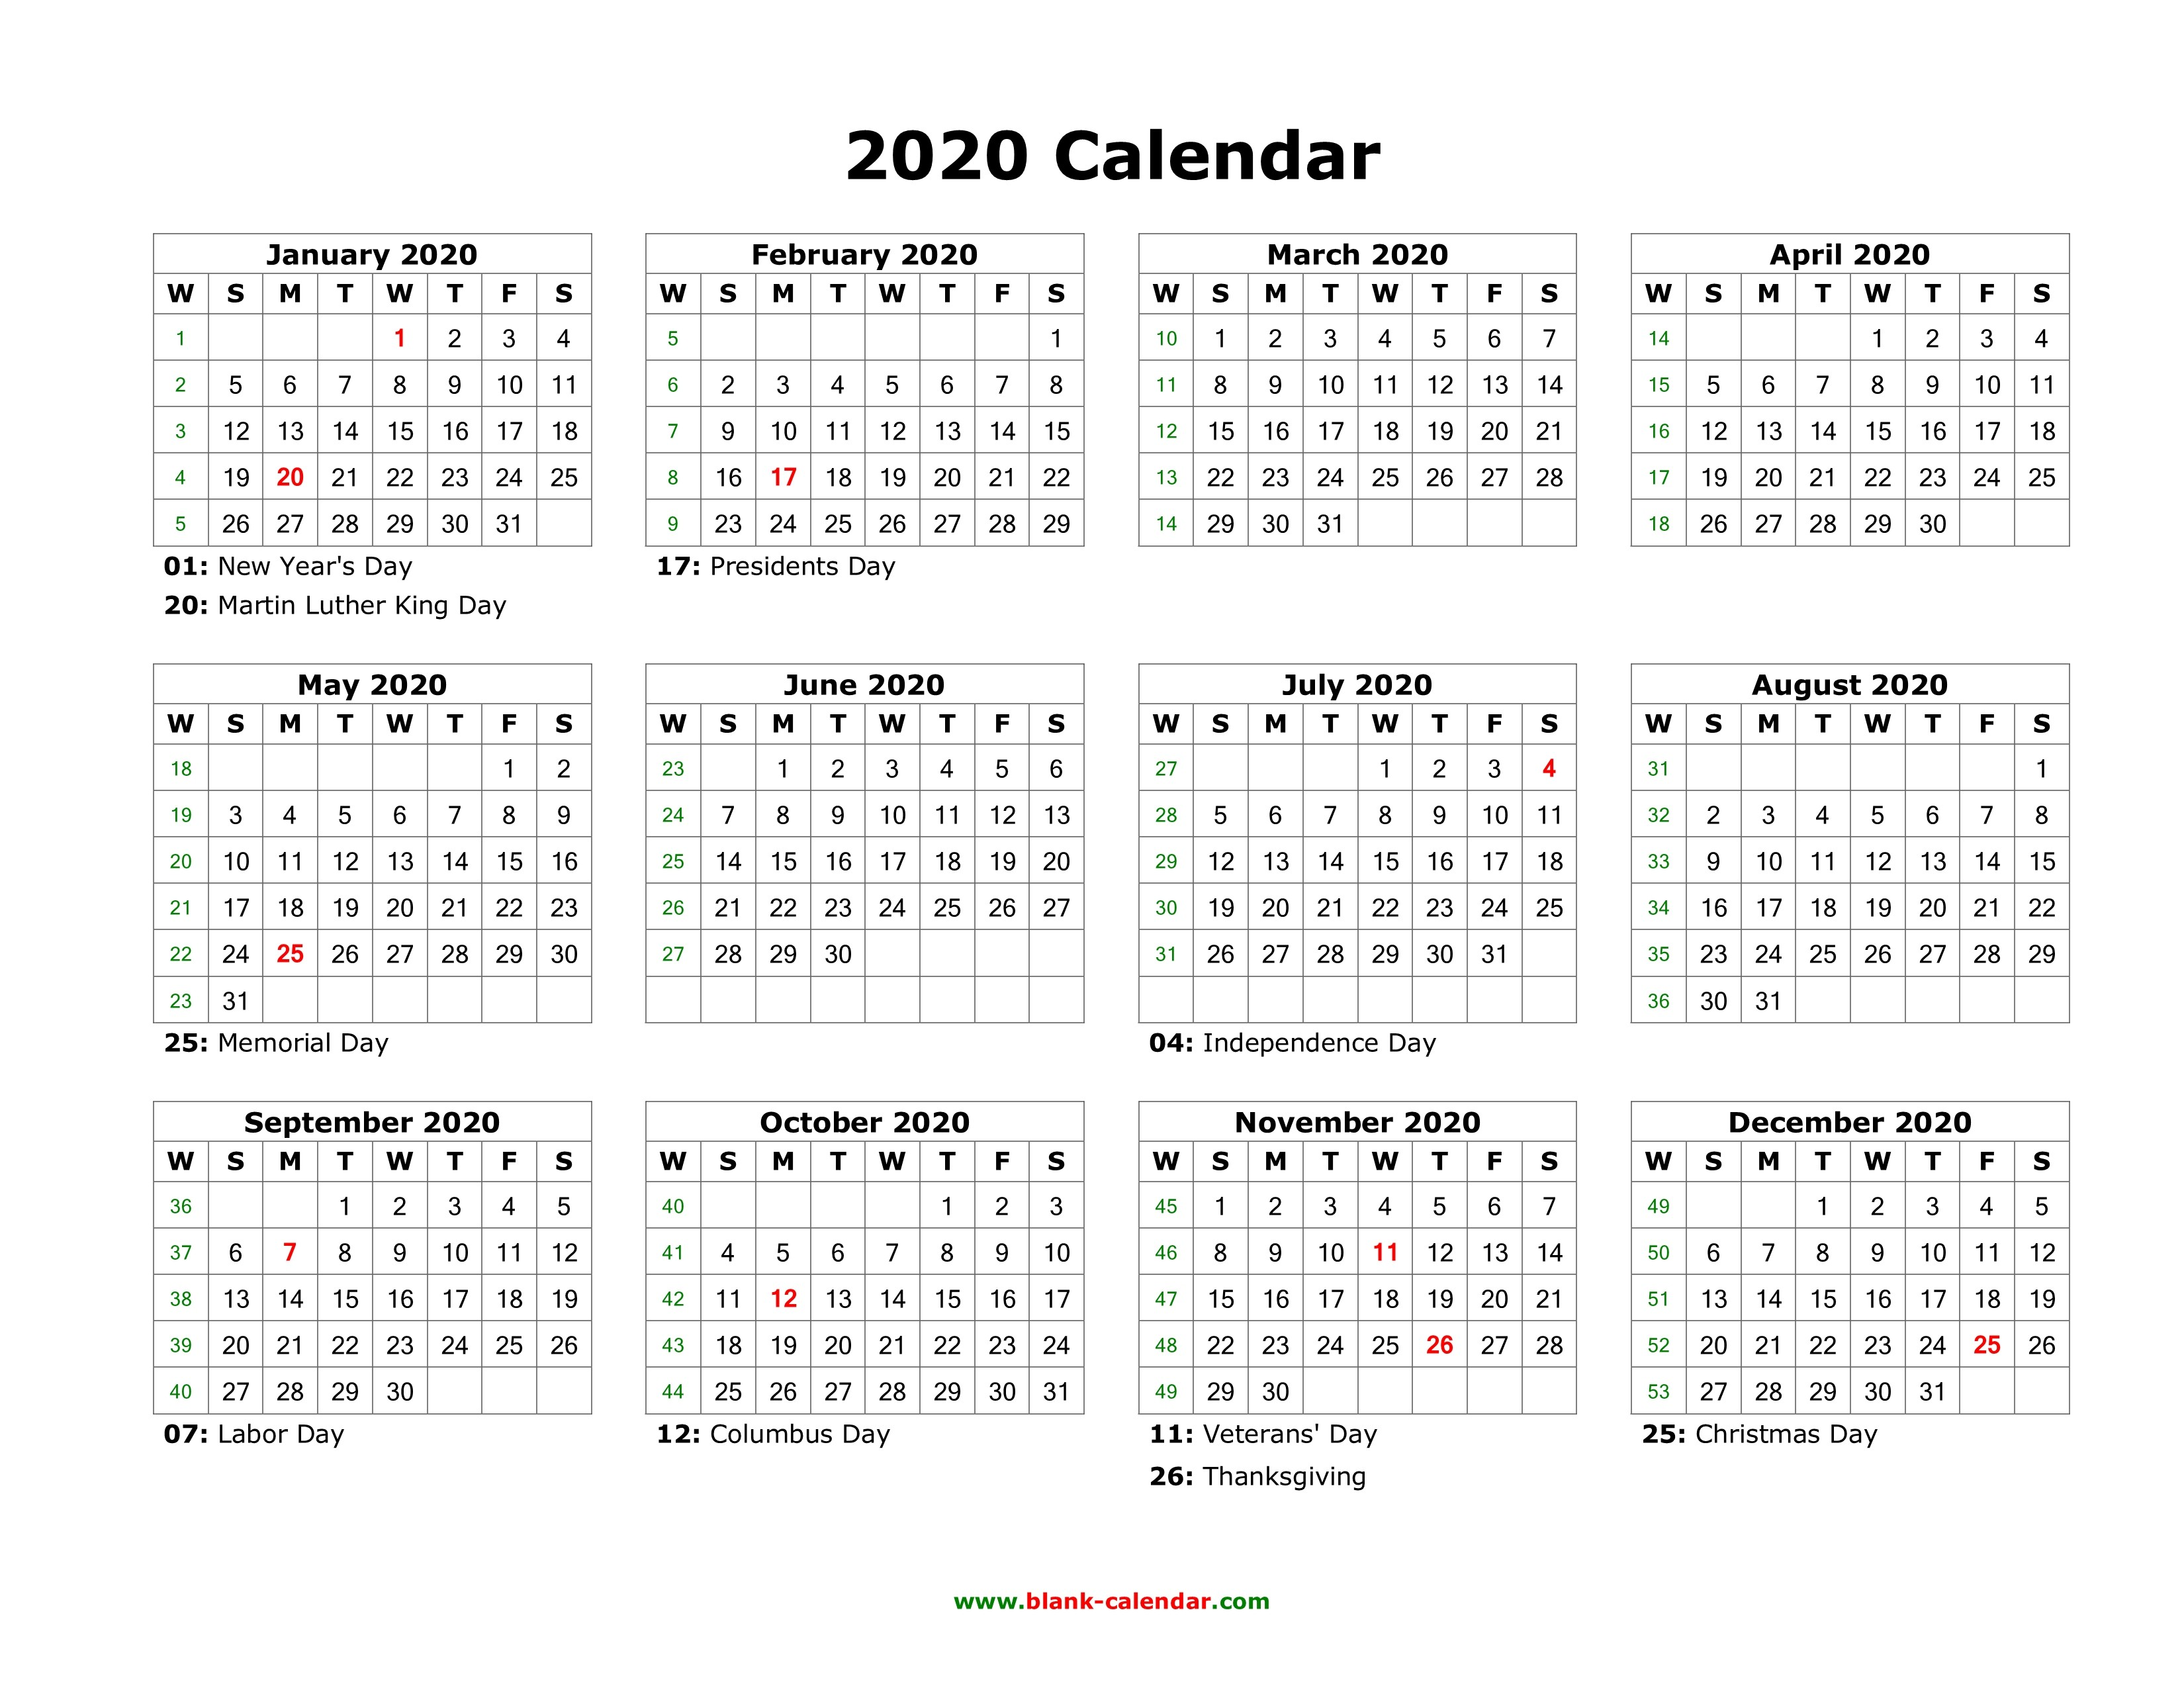 Full Page Printable Calendar 2020 Download Blank Calendar 2020 with Us Holidays 12 Months